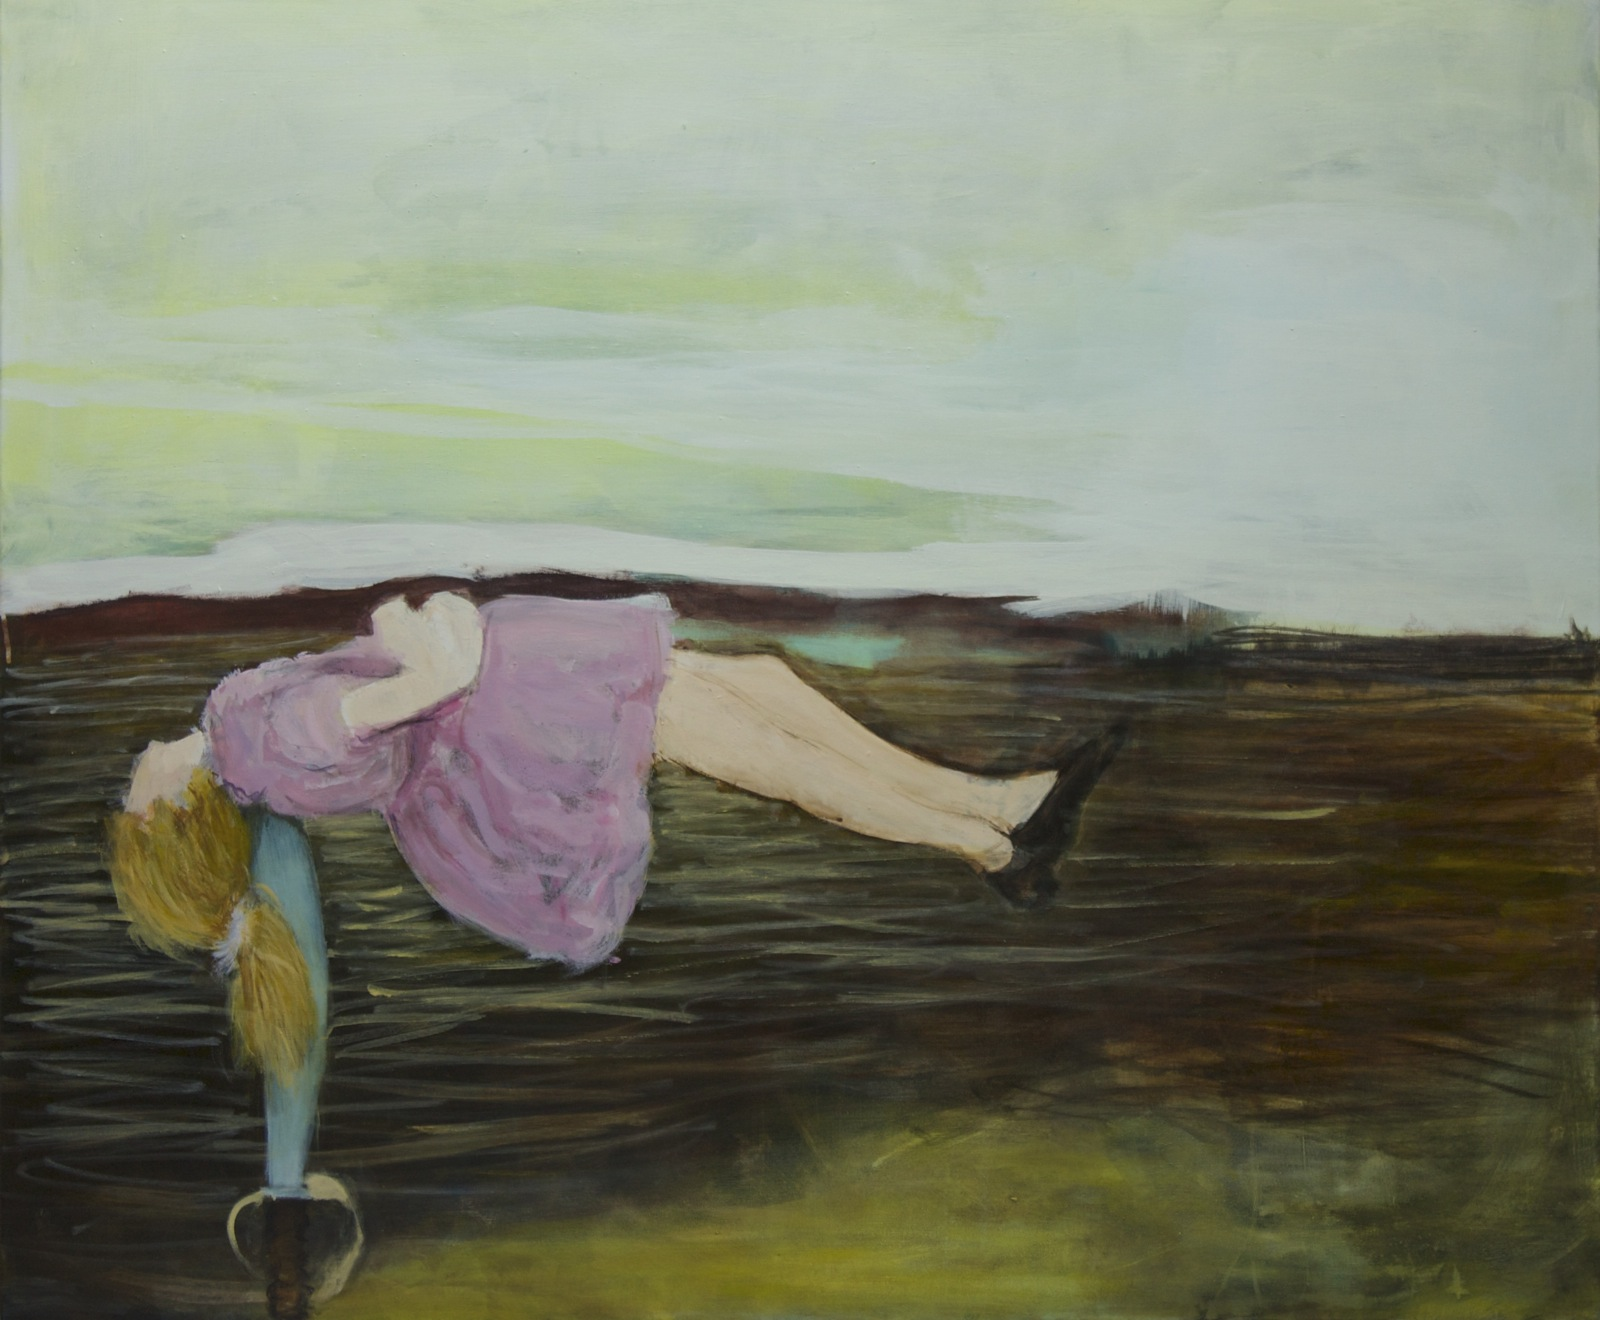 A girl from Achill, 100 cm x 120 cm, acrylic on canvas, 2020